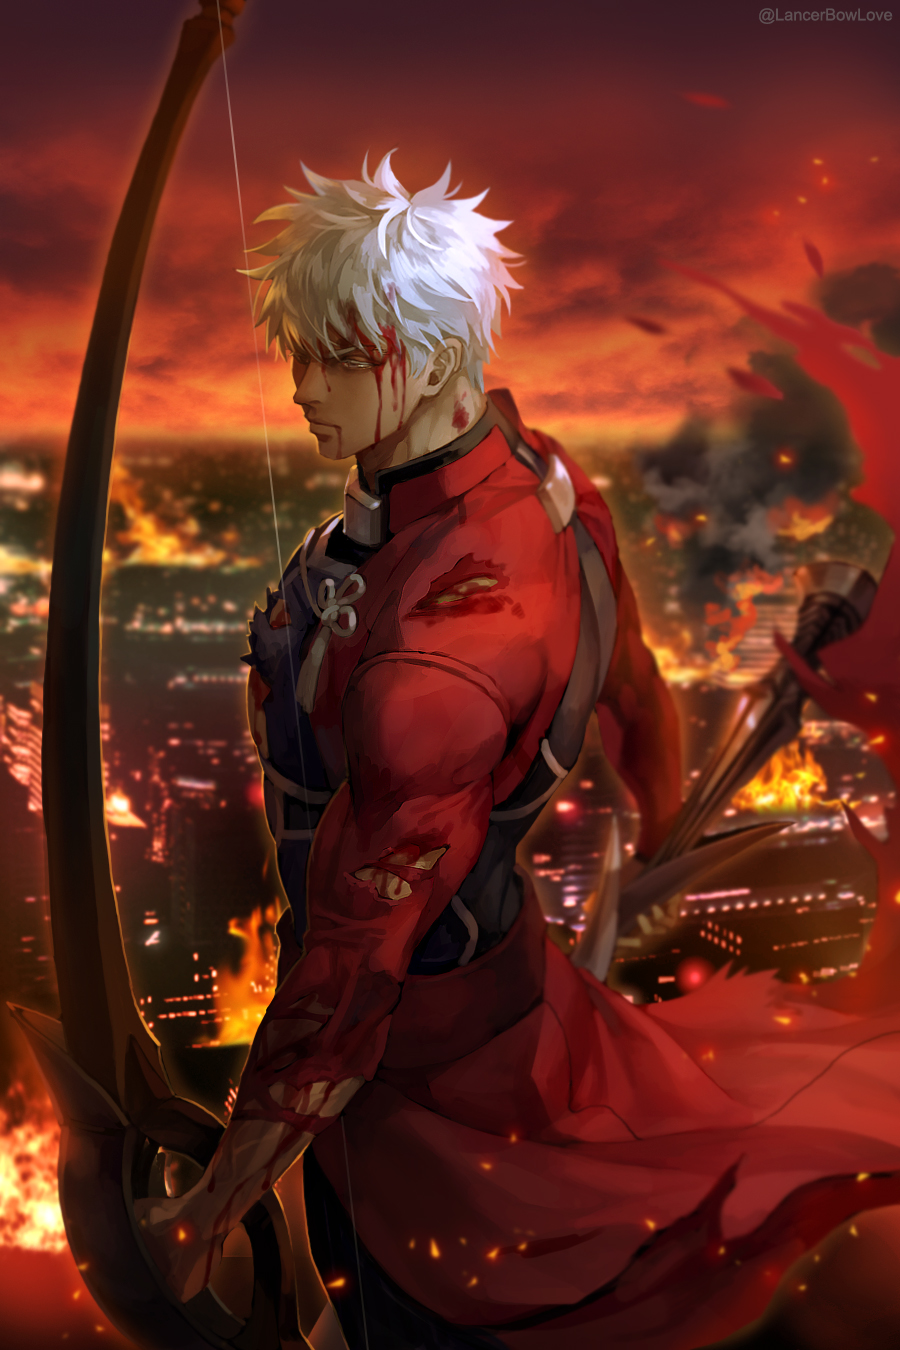 1boy archer artist_name bangs blood blood_from_mouth blood_on_face bow_(weapon) clothing_request dark_skin dark_skinned_male fate/stay_night fate_(series) fire from_side highres holding holding_bow_(weapon) holding_weapon injury jacket kim_yura_(goddess_mechanic) long_sleeves male_focus muscular muscular_male red_jacket red_sky serious shiny shiny_hair short_hair sky smoke solo torn_clothes weapon white_hair